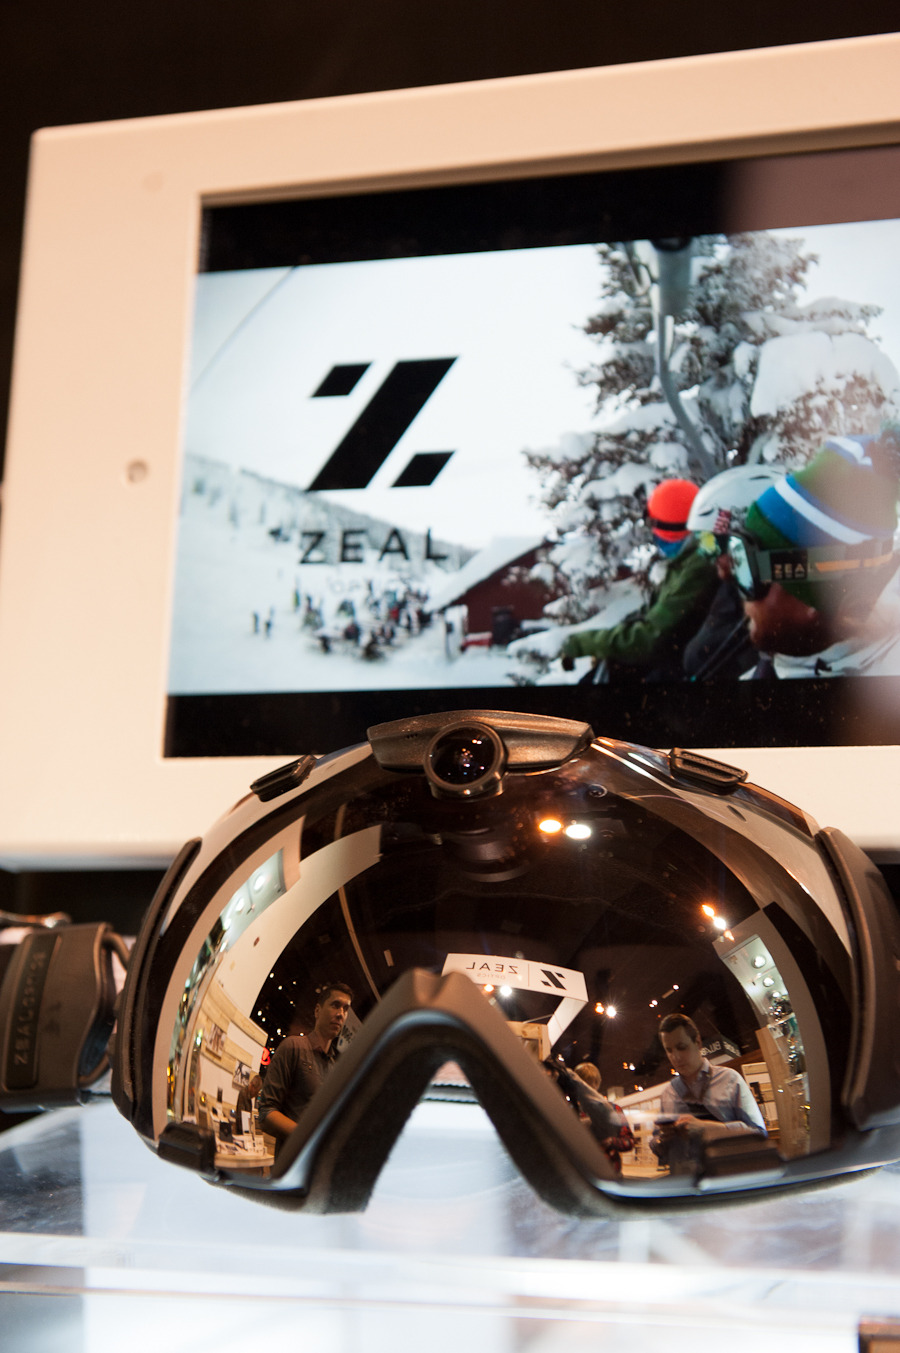 The impressive HD Camera Goggle from Zeal Optics shoots in 1080 HD at 120 FPS and takes 12 megapixel photos. The goggles come with an 8GB memory card and a mirrored lens, with the option to purchase a low light lens separately.